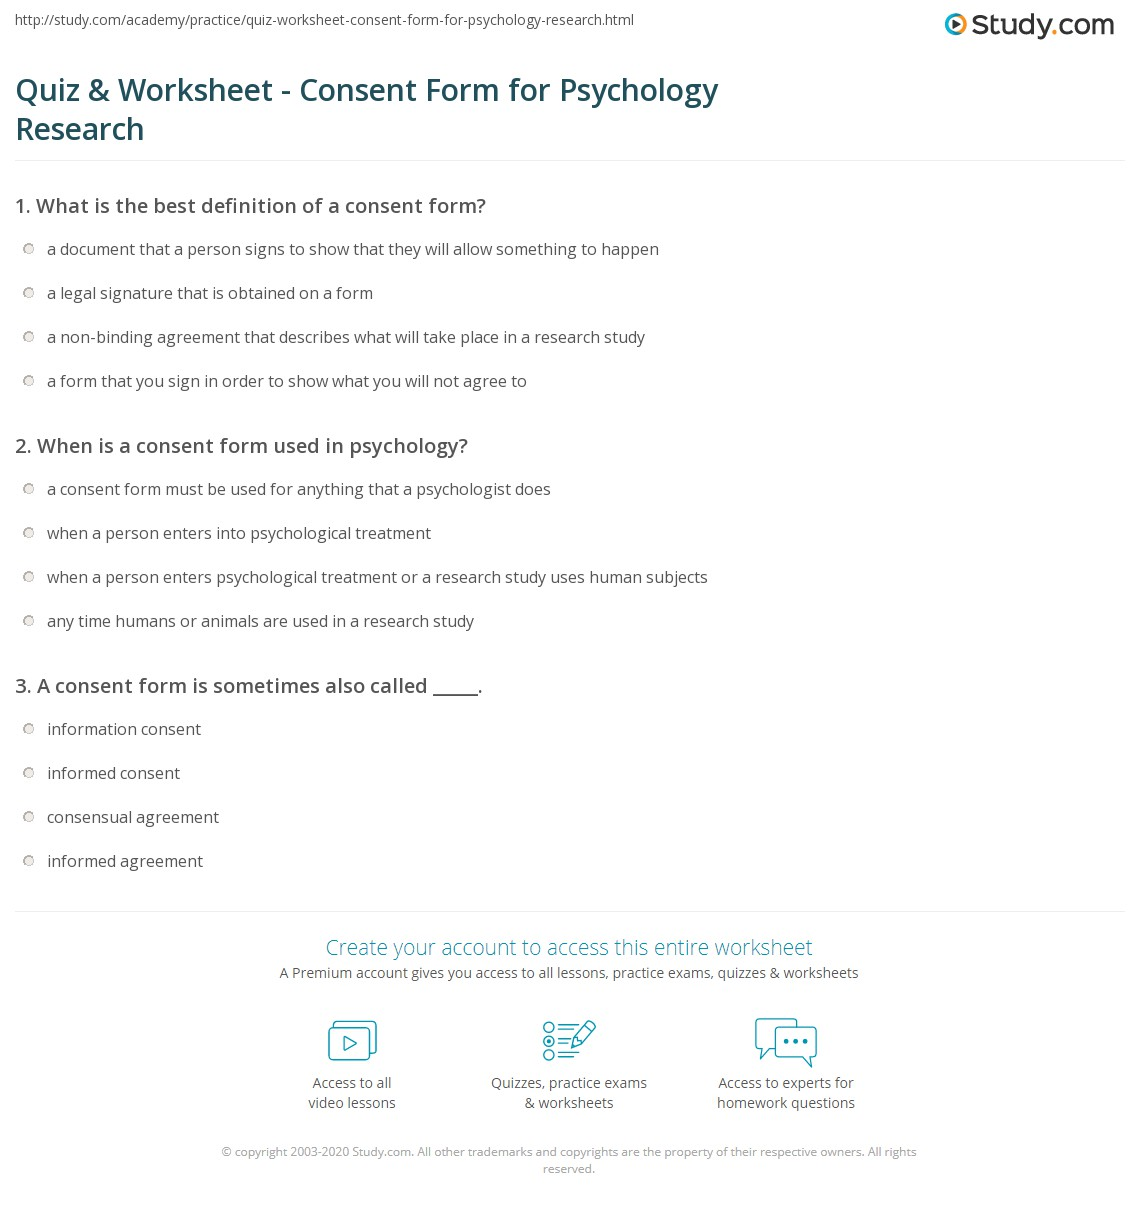 Quiz Worksheet Consent Form for Psychology Research – Consent Form